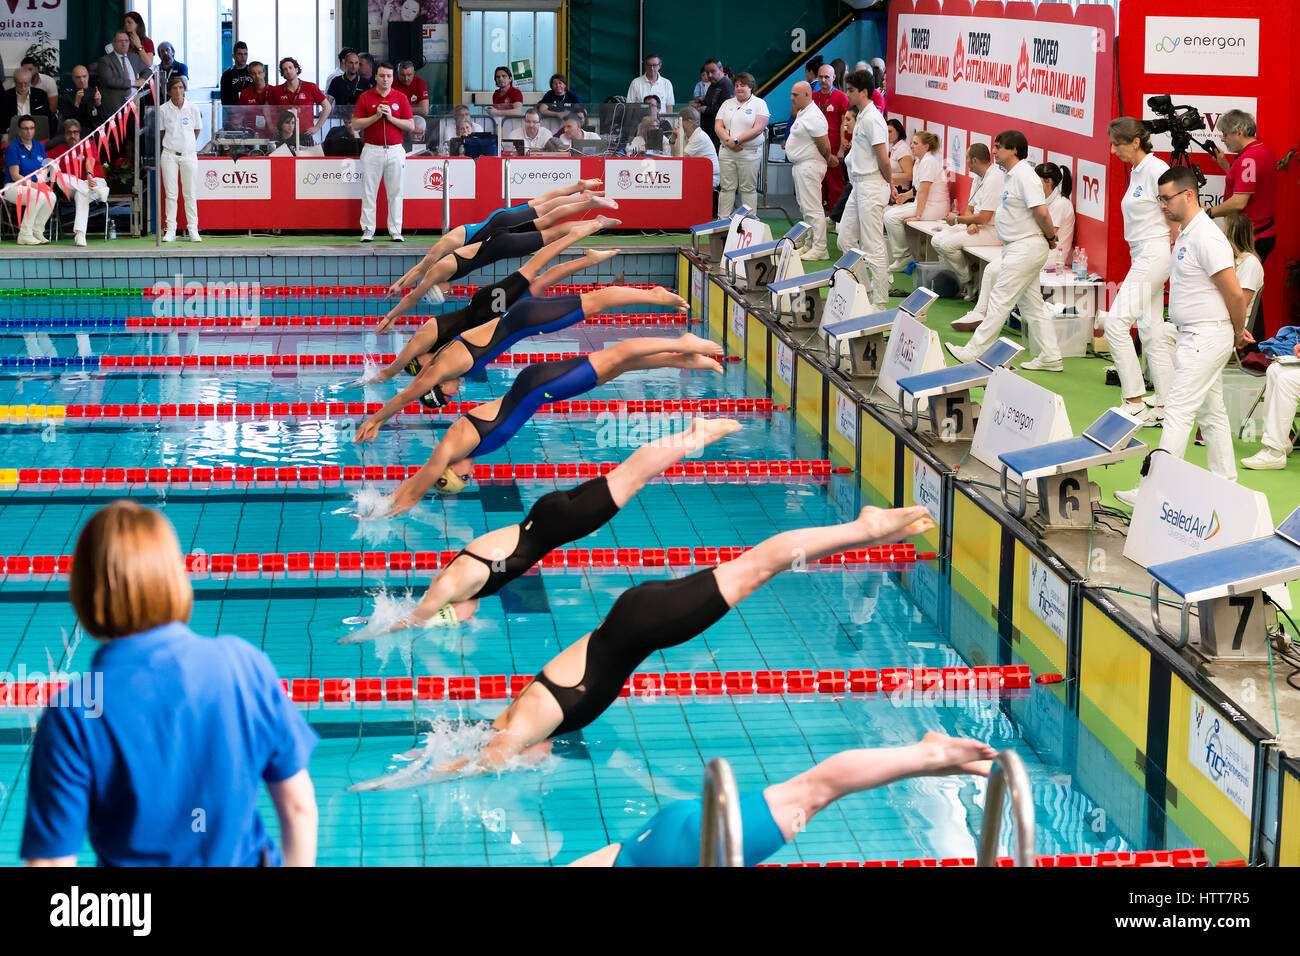 MILAN, ITALY - March 10, 2017: female swimmers starting during 7th Trofeo citta di Milano swimming competition. - Stock Image